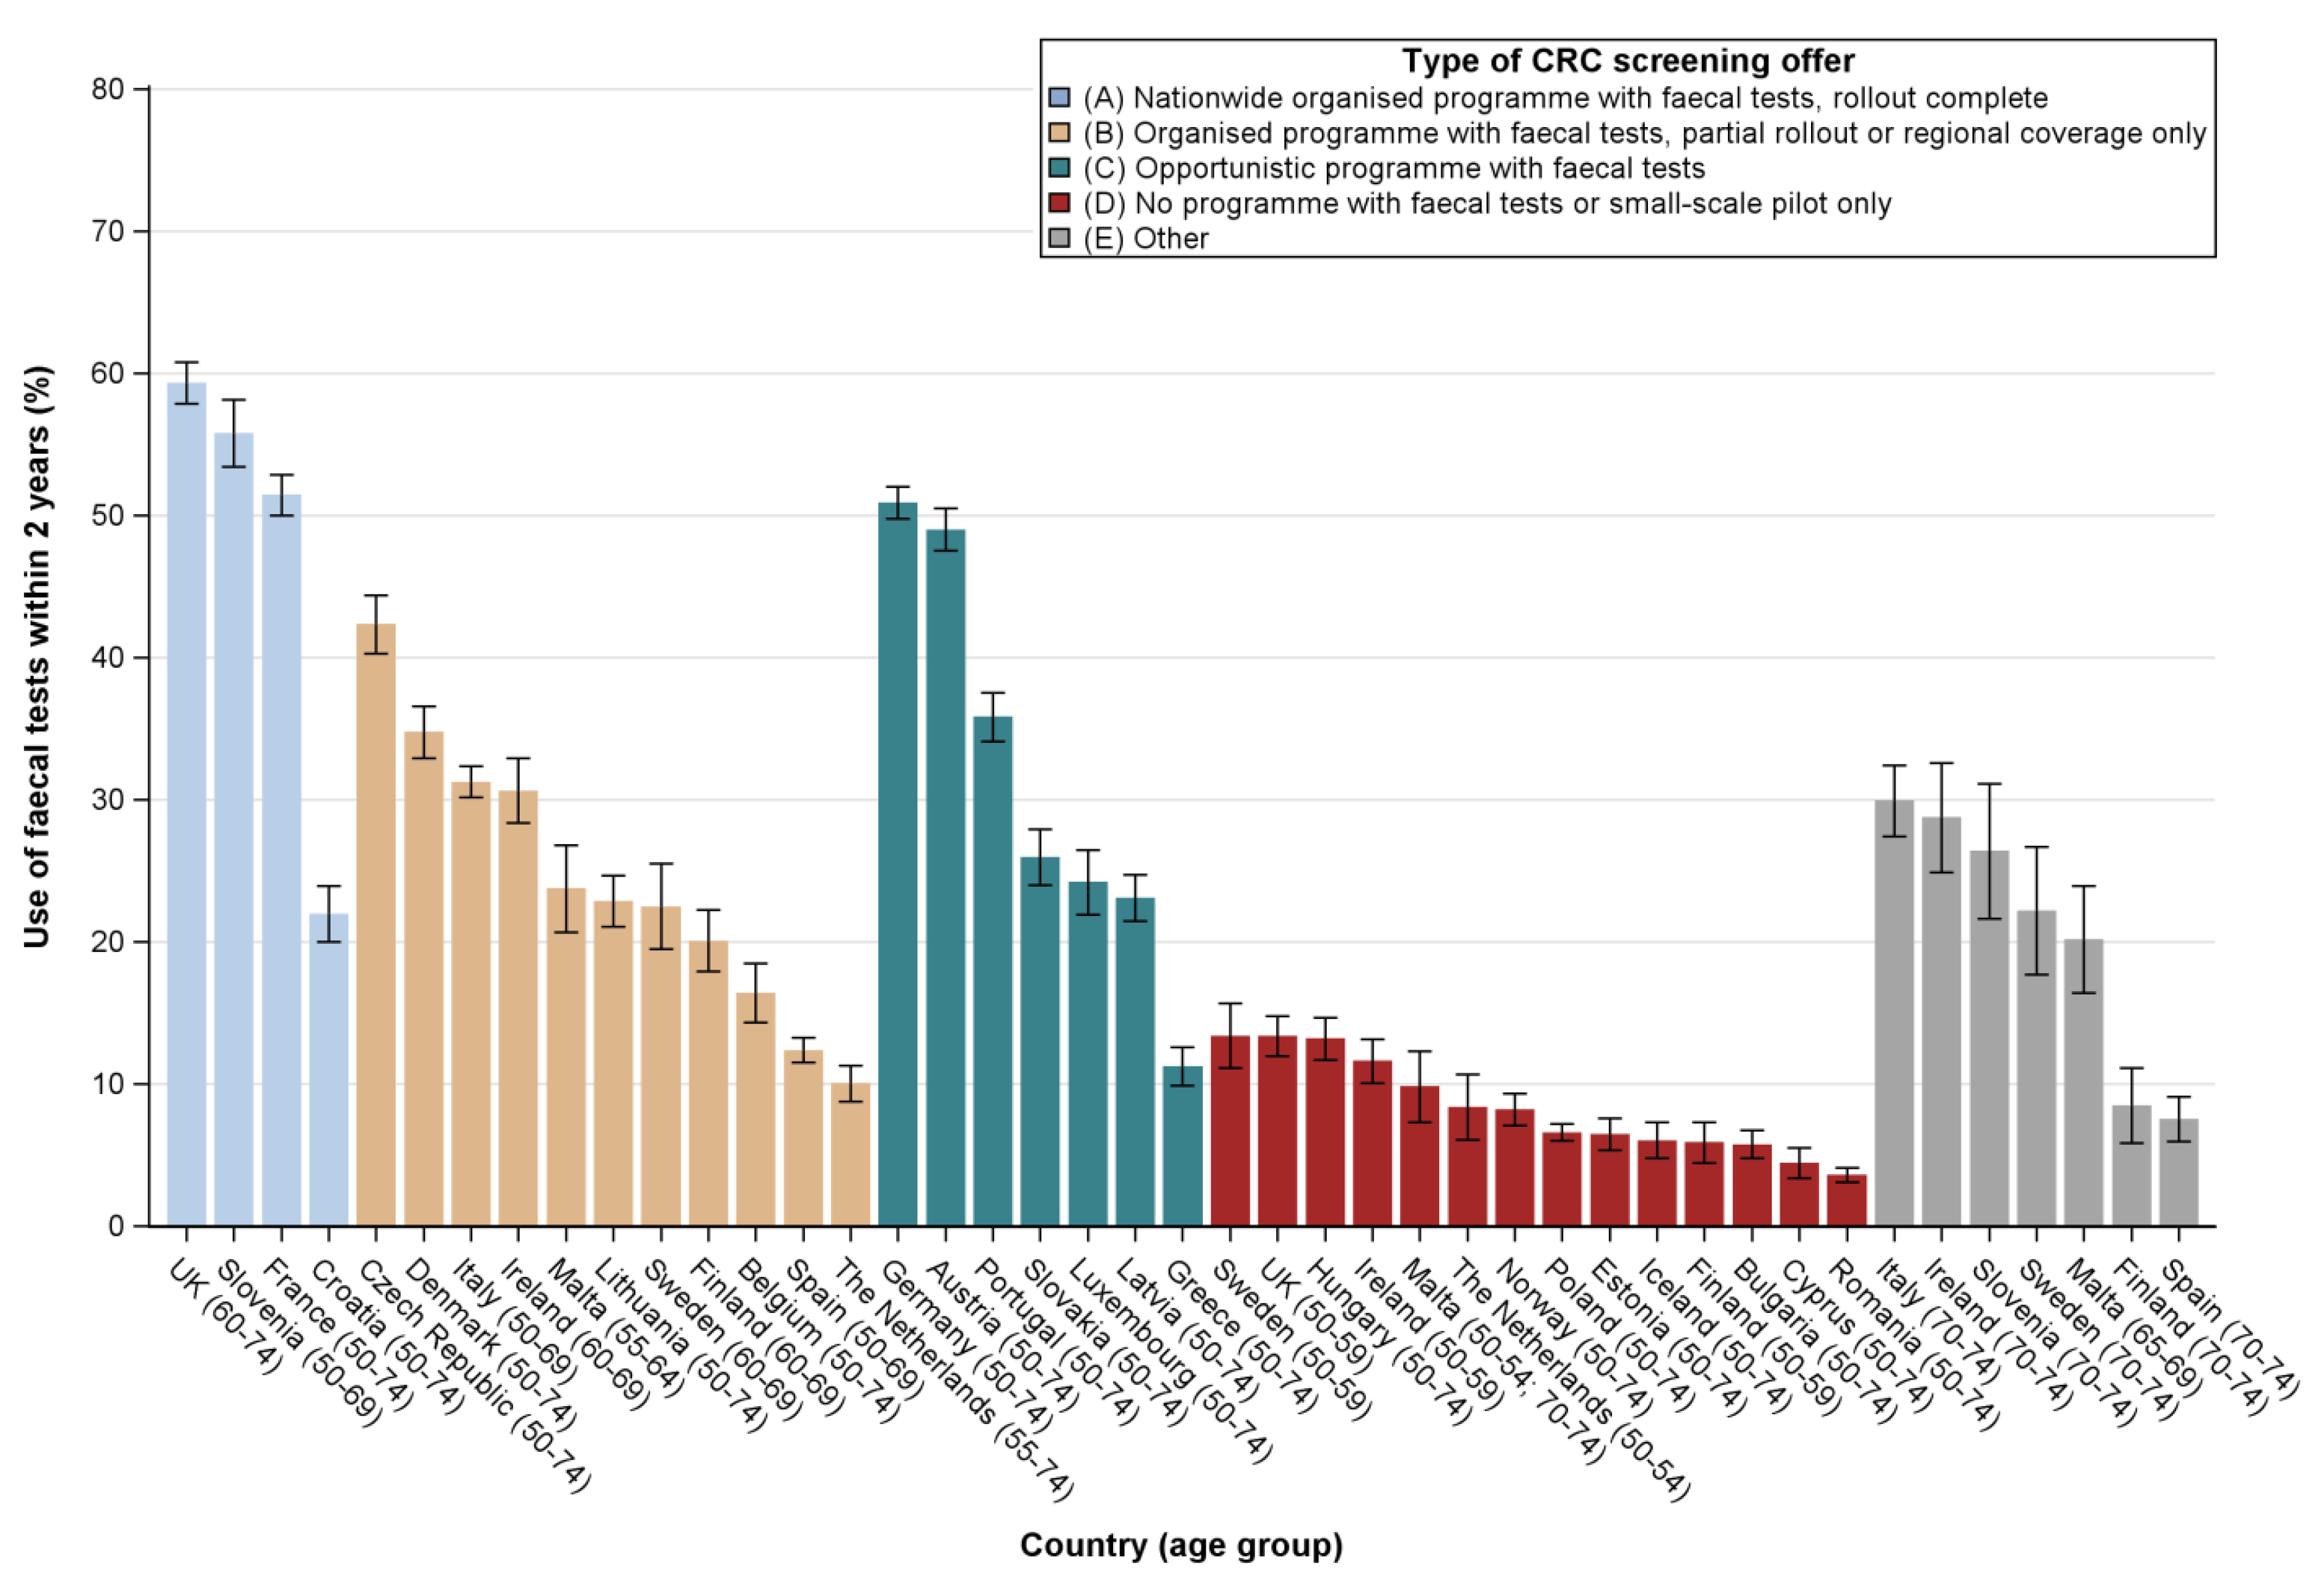 Cancers Free Full Text Utilisation Of Colorectal Cancer Screening Tests In European Countries By Type Of Screening Offer Results From The European Health Interview Survey Html